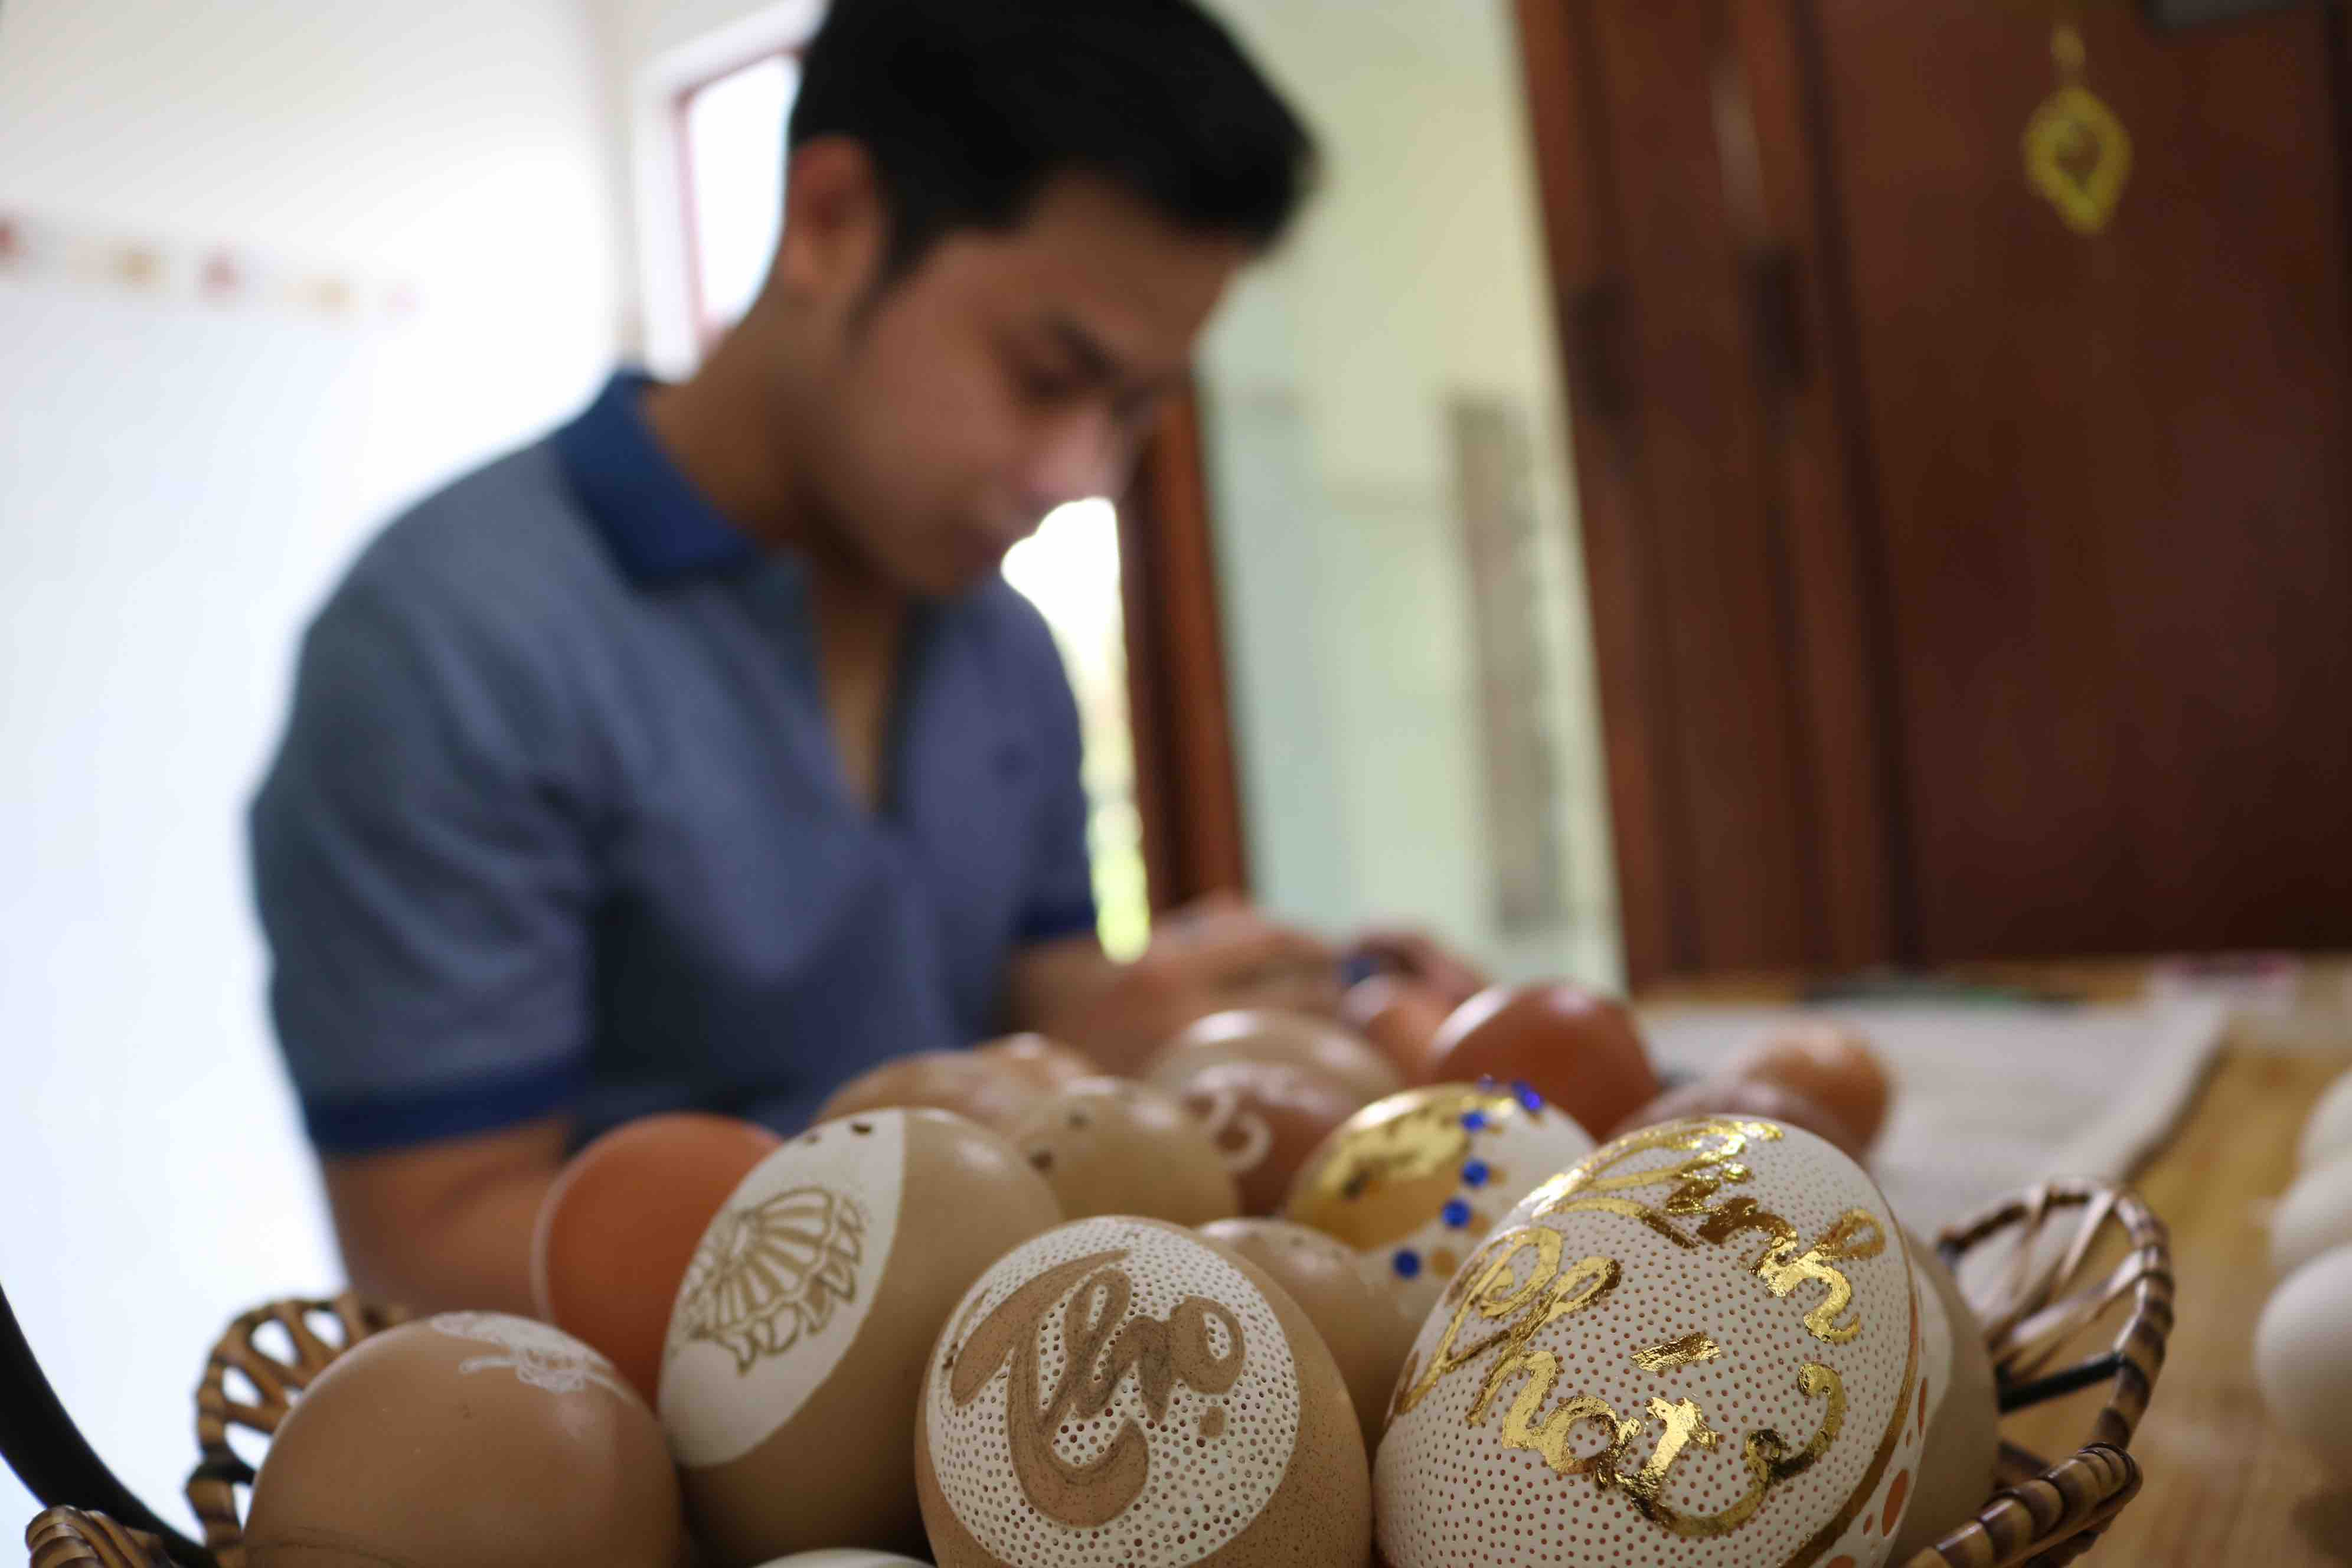 A set of eggshell sculptures made by Tran Minh Nhut. Photo: Hoang An / Tuoi Tre